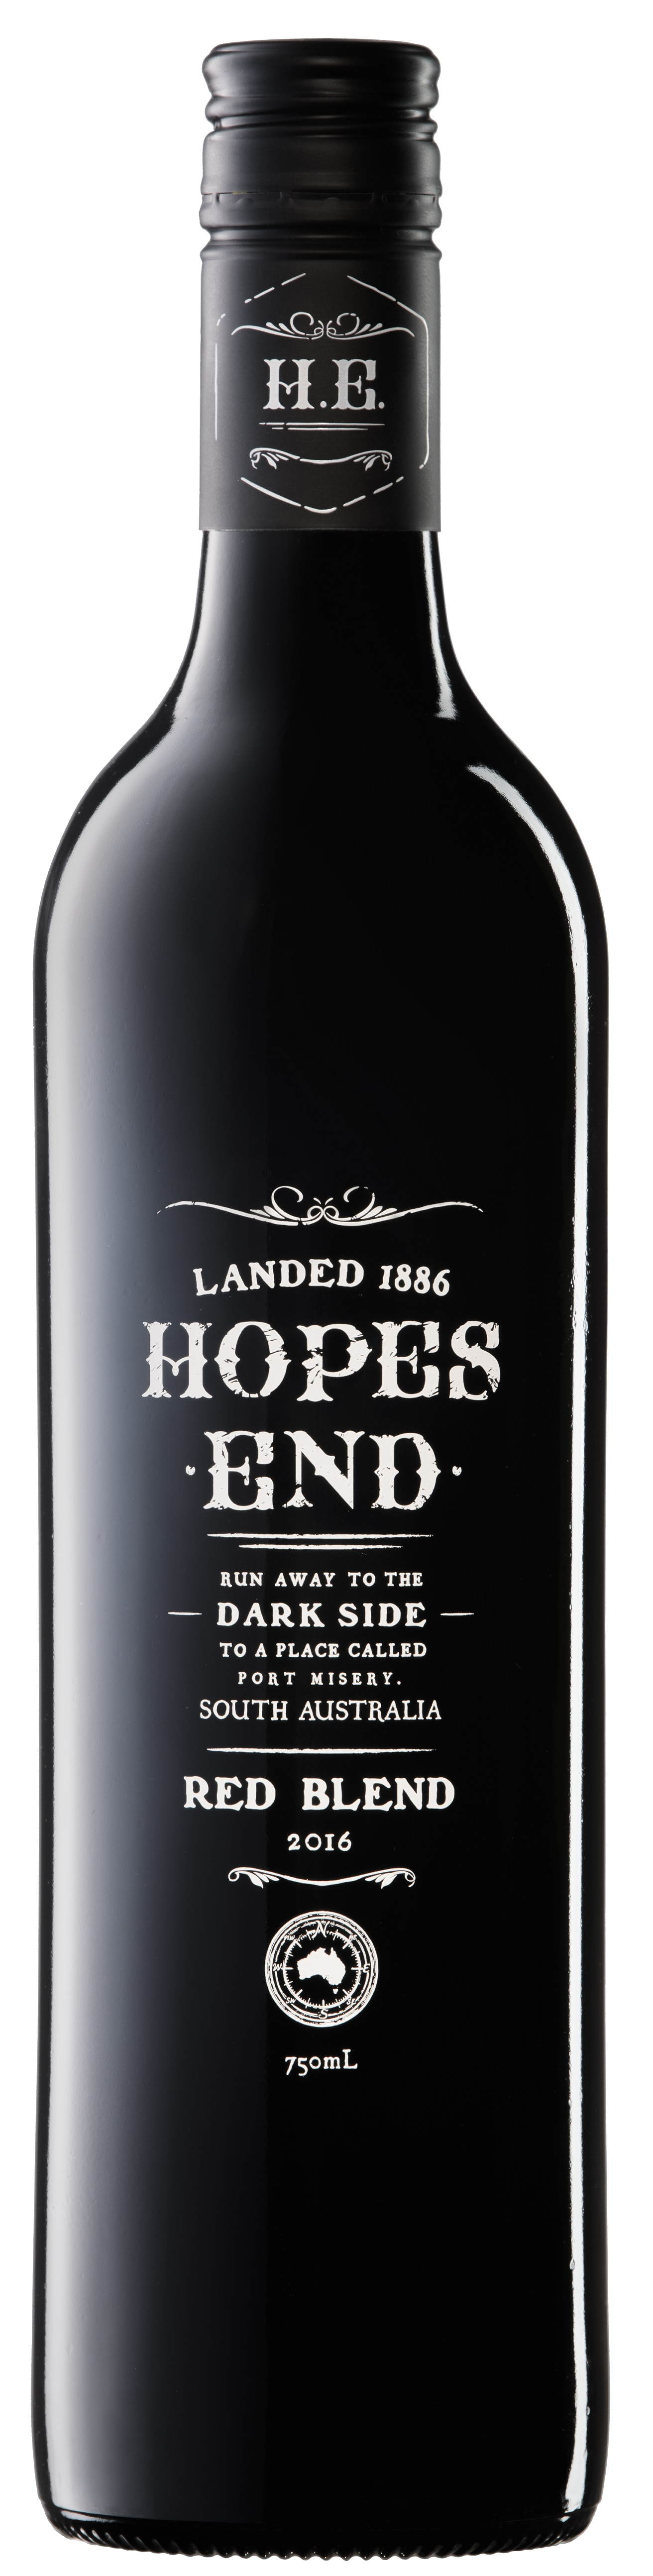 Hopes End 2016 blend2